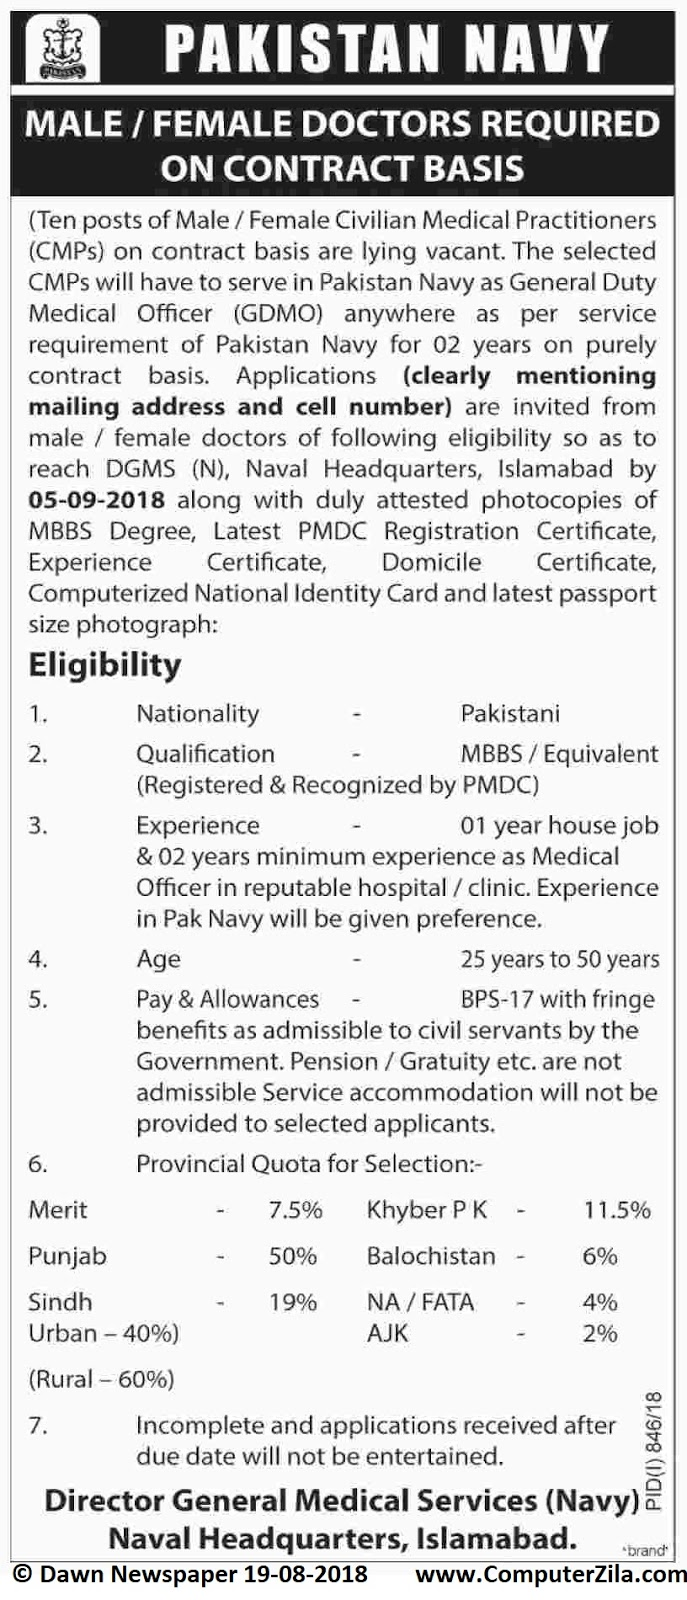 Male / Female Doctors Required on Contract Basis at Pakistan Navy